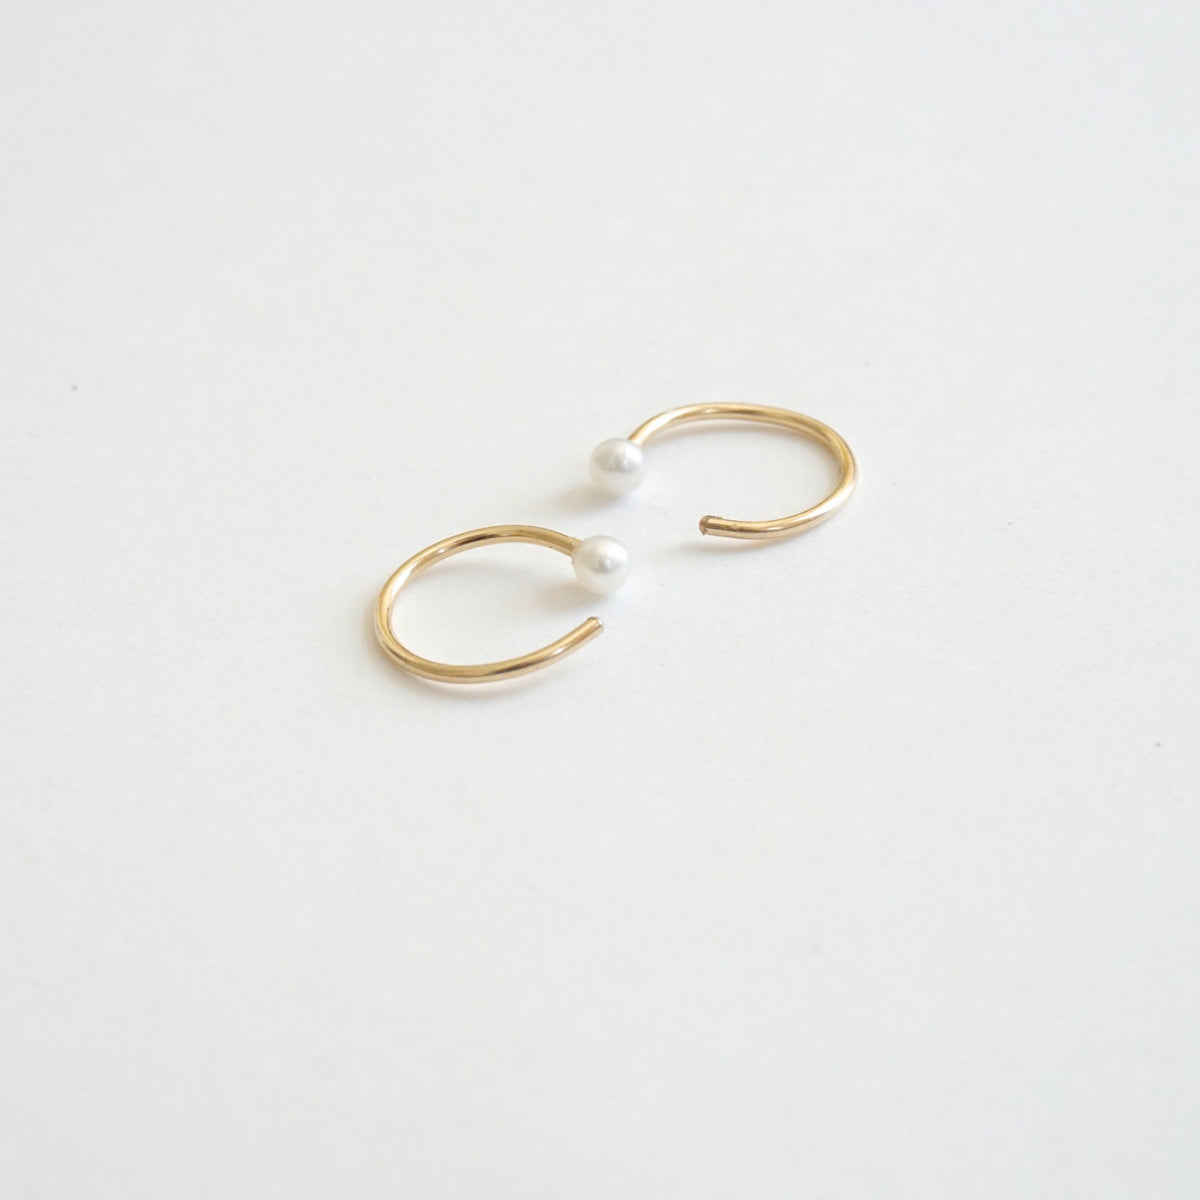 Elegant And Well Designed Hand-Made Tiny Pearl Hugging Hoop Earrings - 0270 - Virginia Wynne Designs